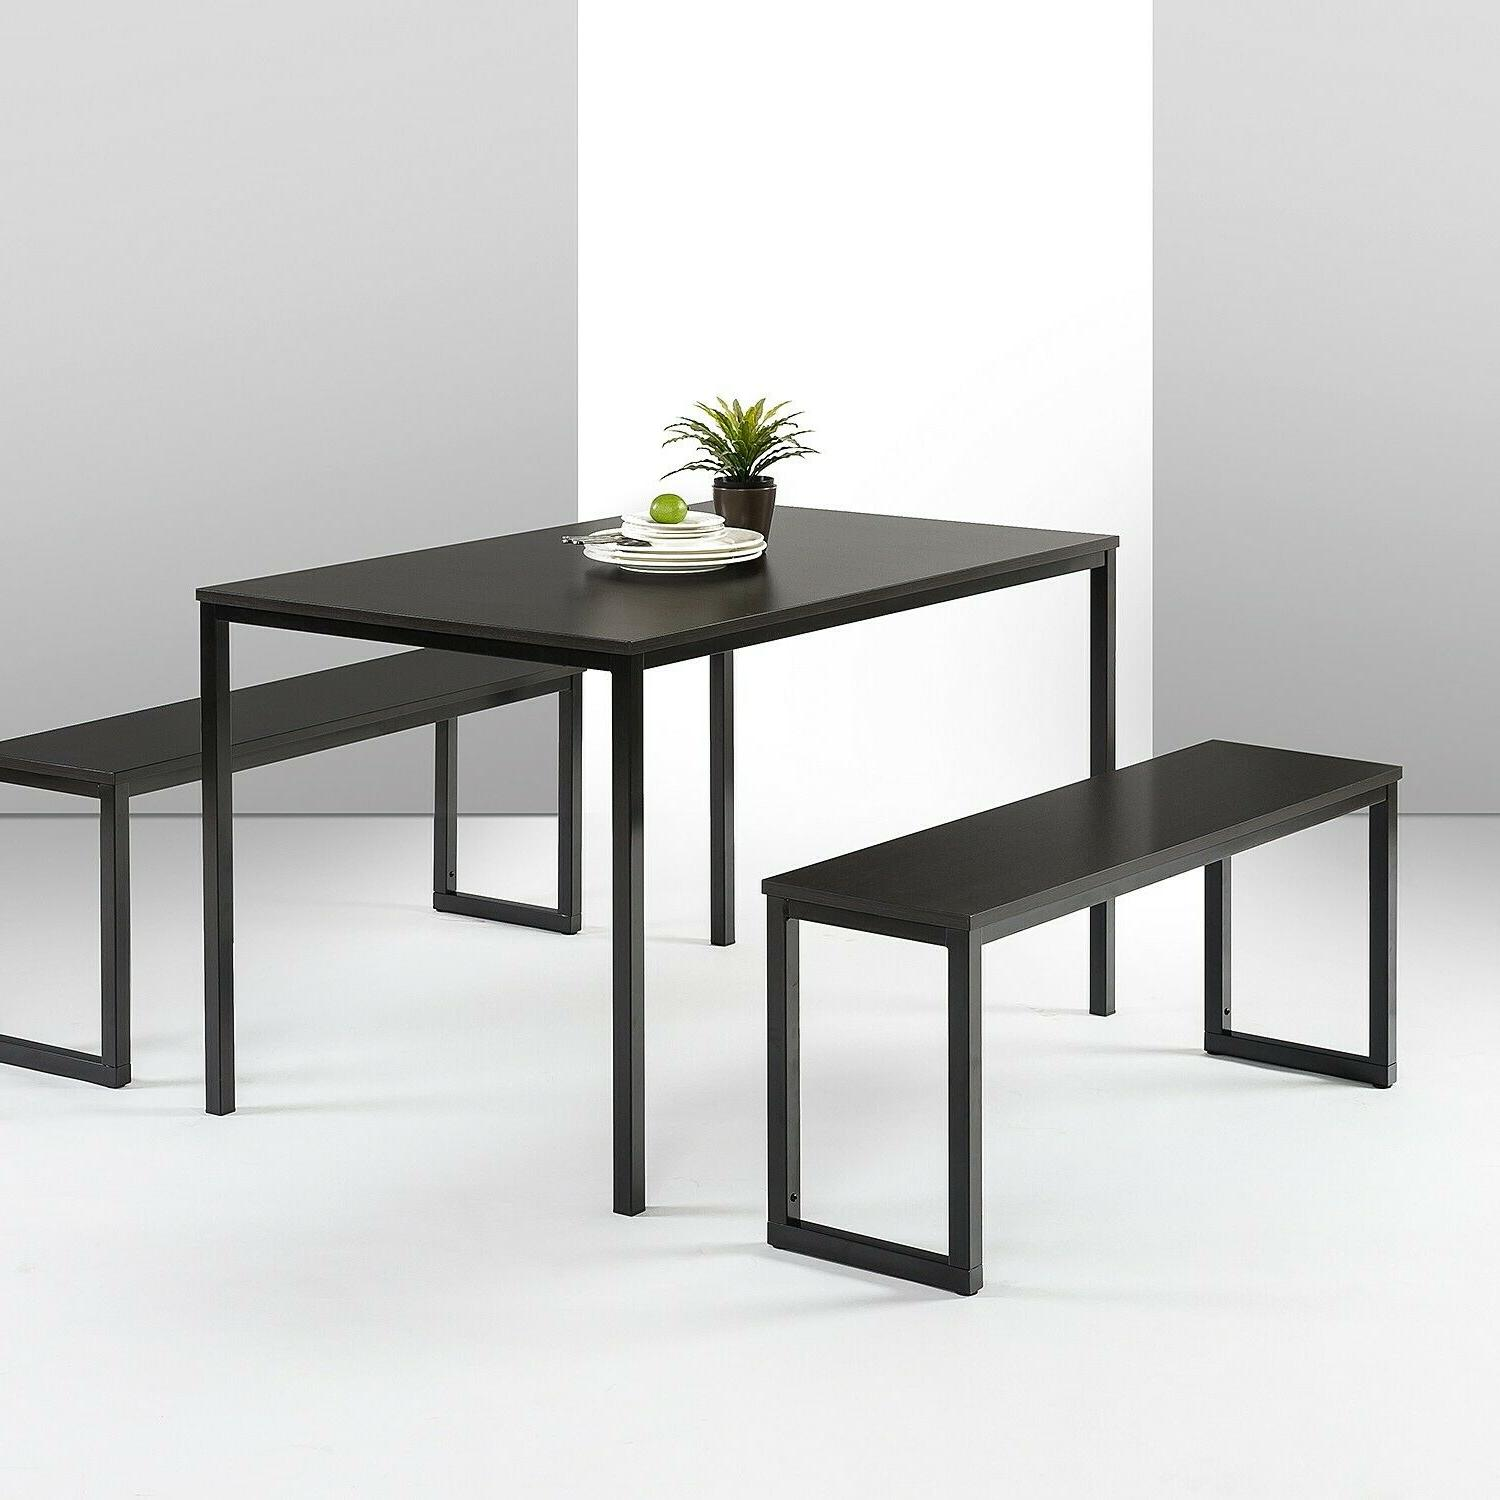 Dining Table Set 3 Piece Kitchen Room Breakfast Furniture Wi